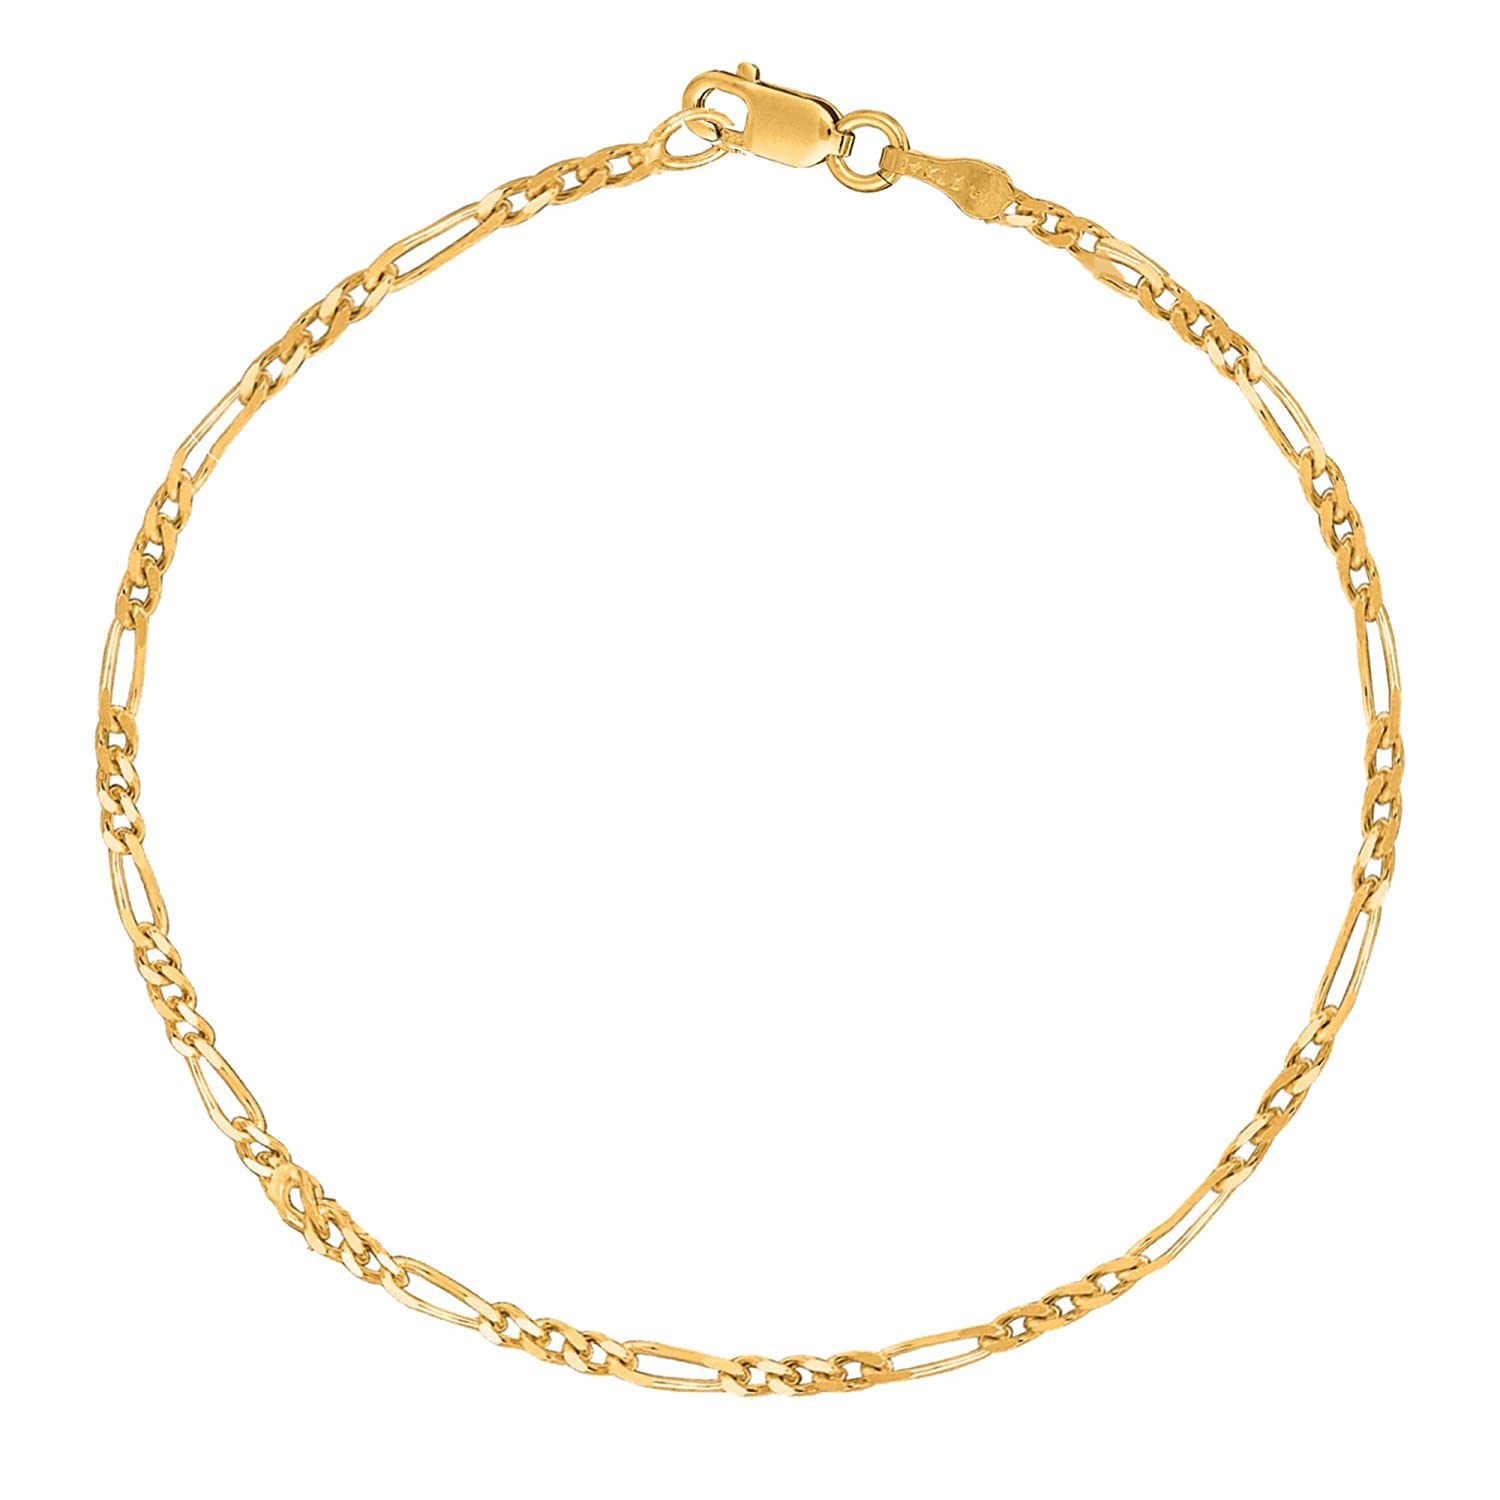 Sterling Silver or Gold Tone Italian Figaro Anklet Ankle Bracelet 2.1 Mm 10 Inches Ritastephens